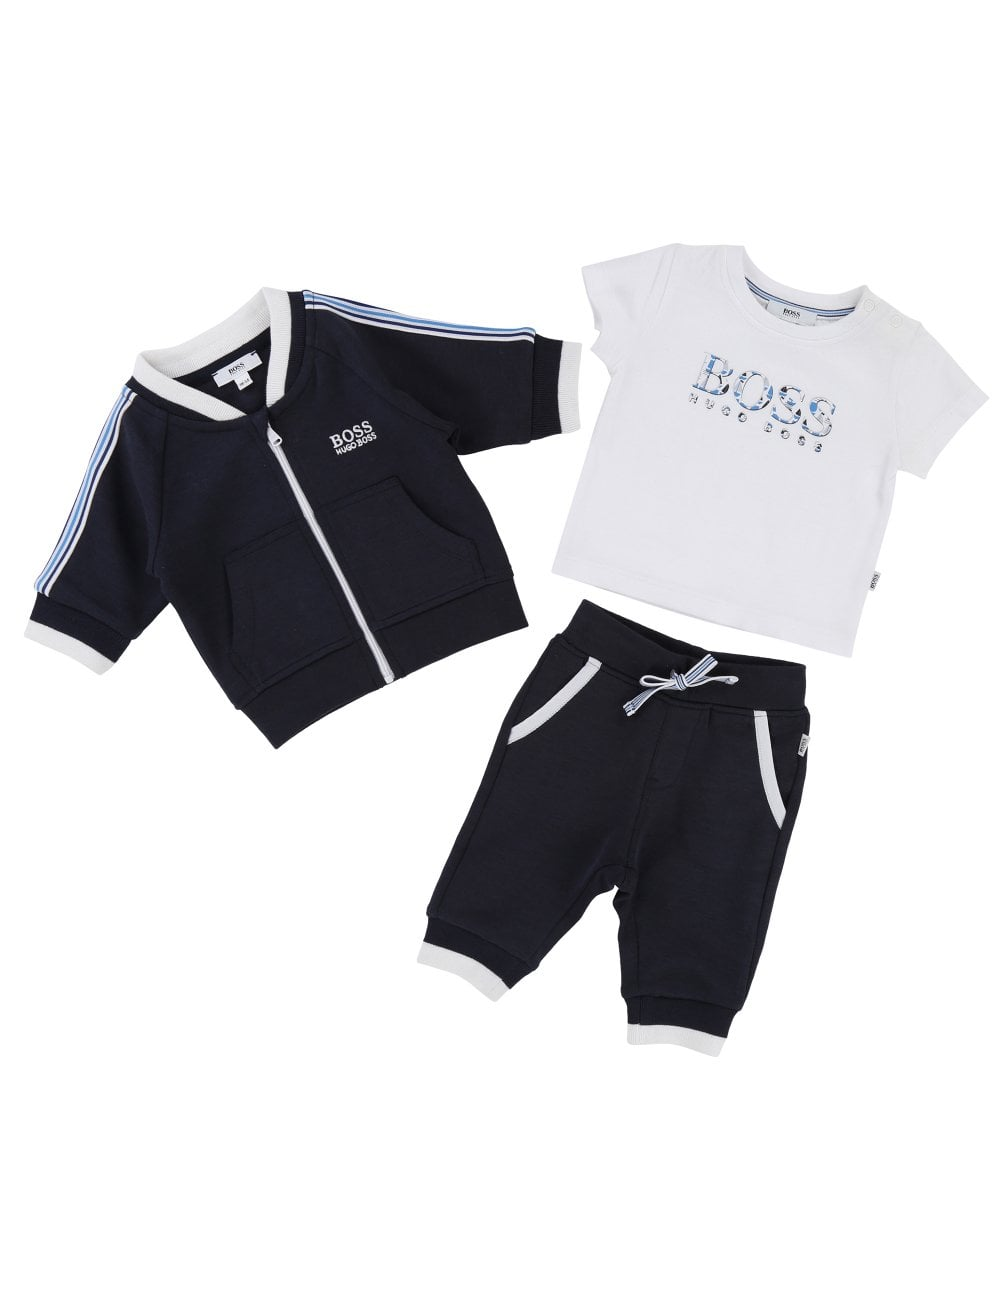 Hugo Boss Kids Baby Boys Tracksuit Outfit 508ca62307